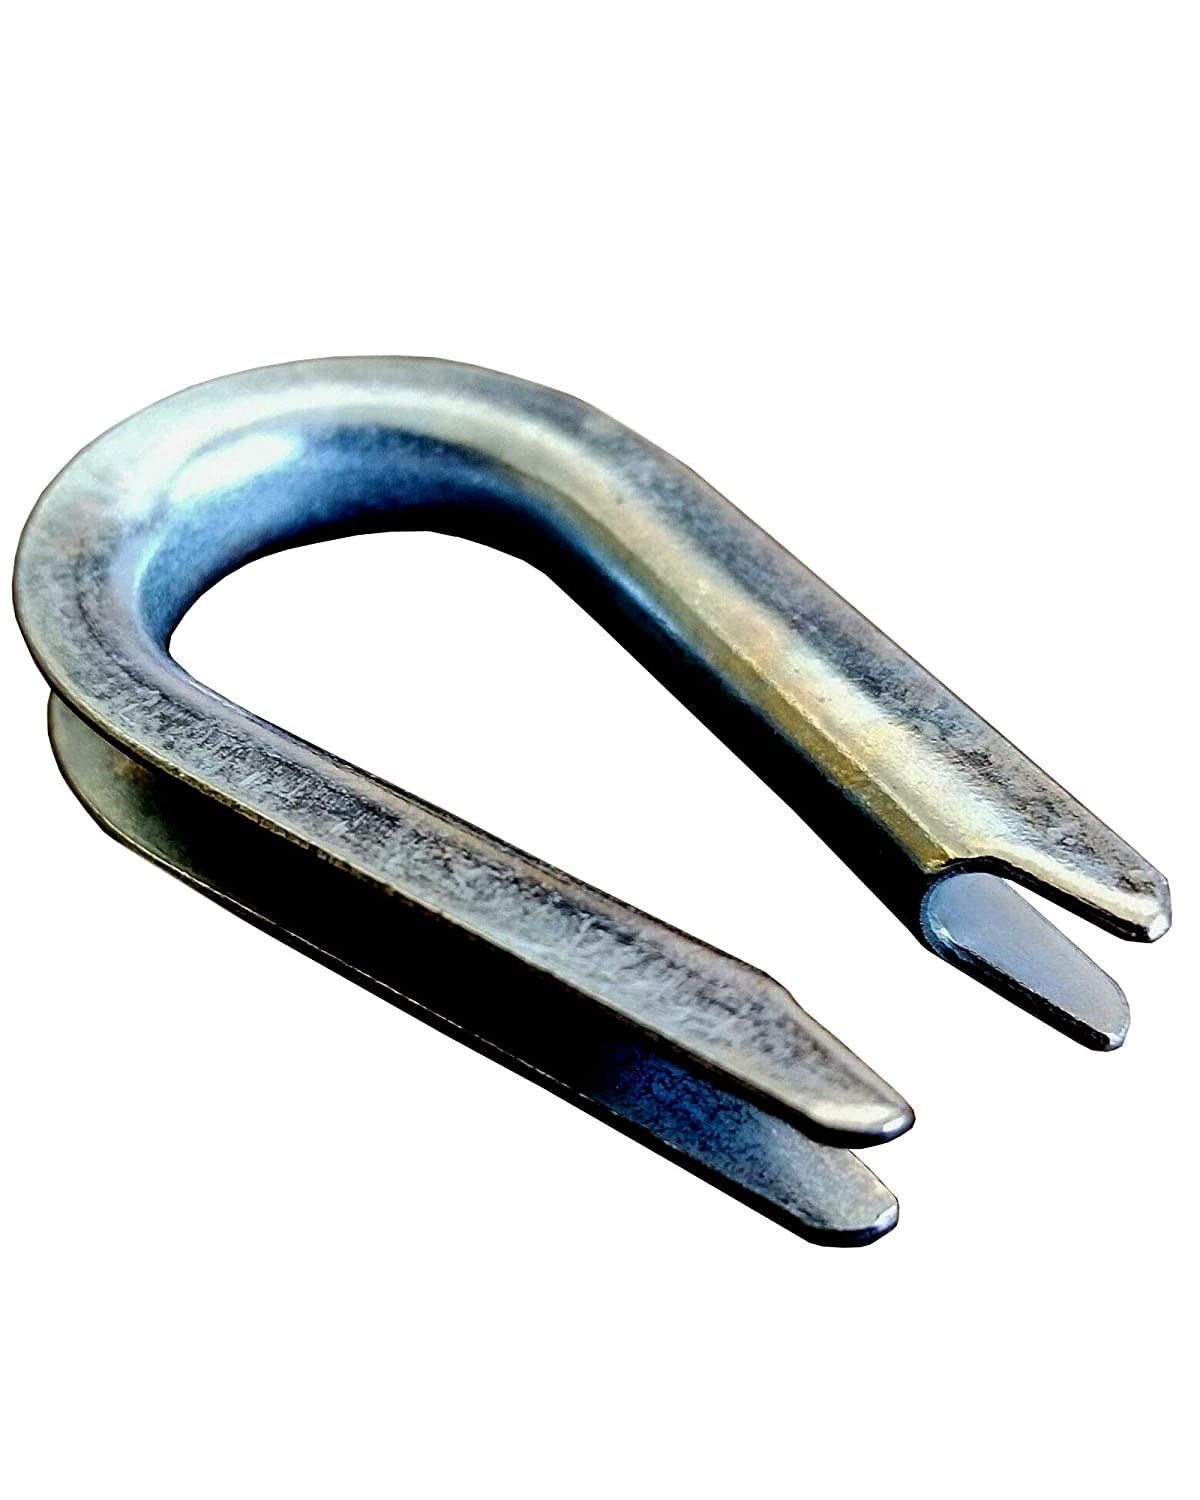 3//16 Inch Wire Rope Thimble 3//16 Thimbles fit 3//16 Steel Aircraft Cable Wire Rope Thimbles 25 Wire Rope Cable Thimbles